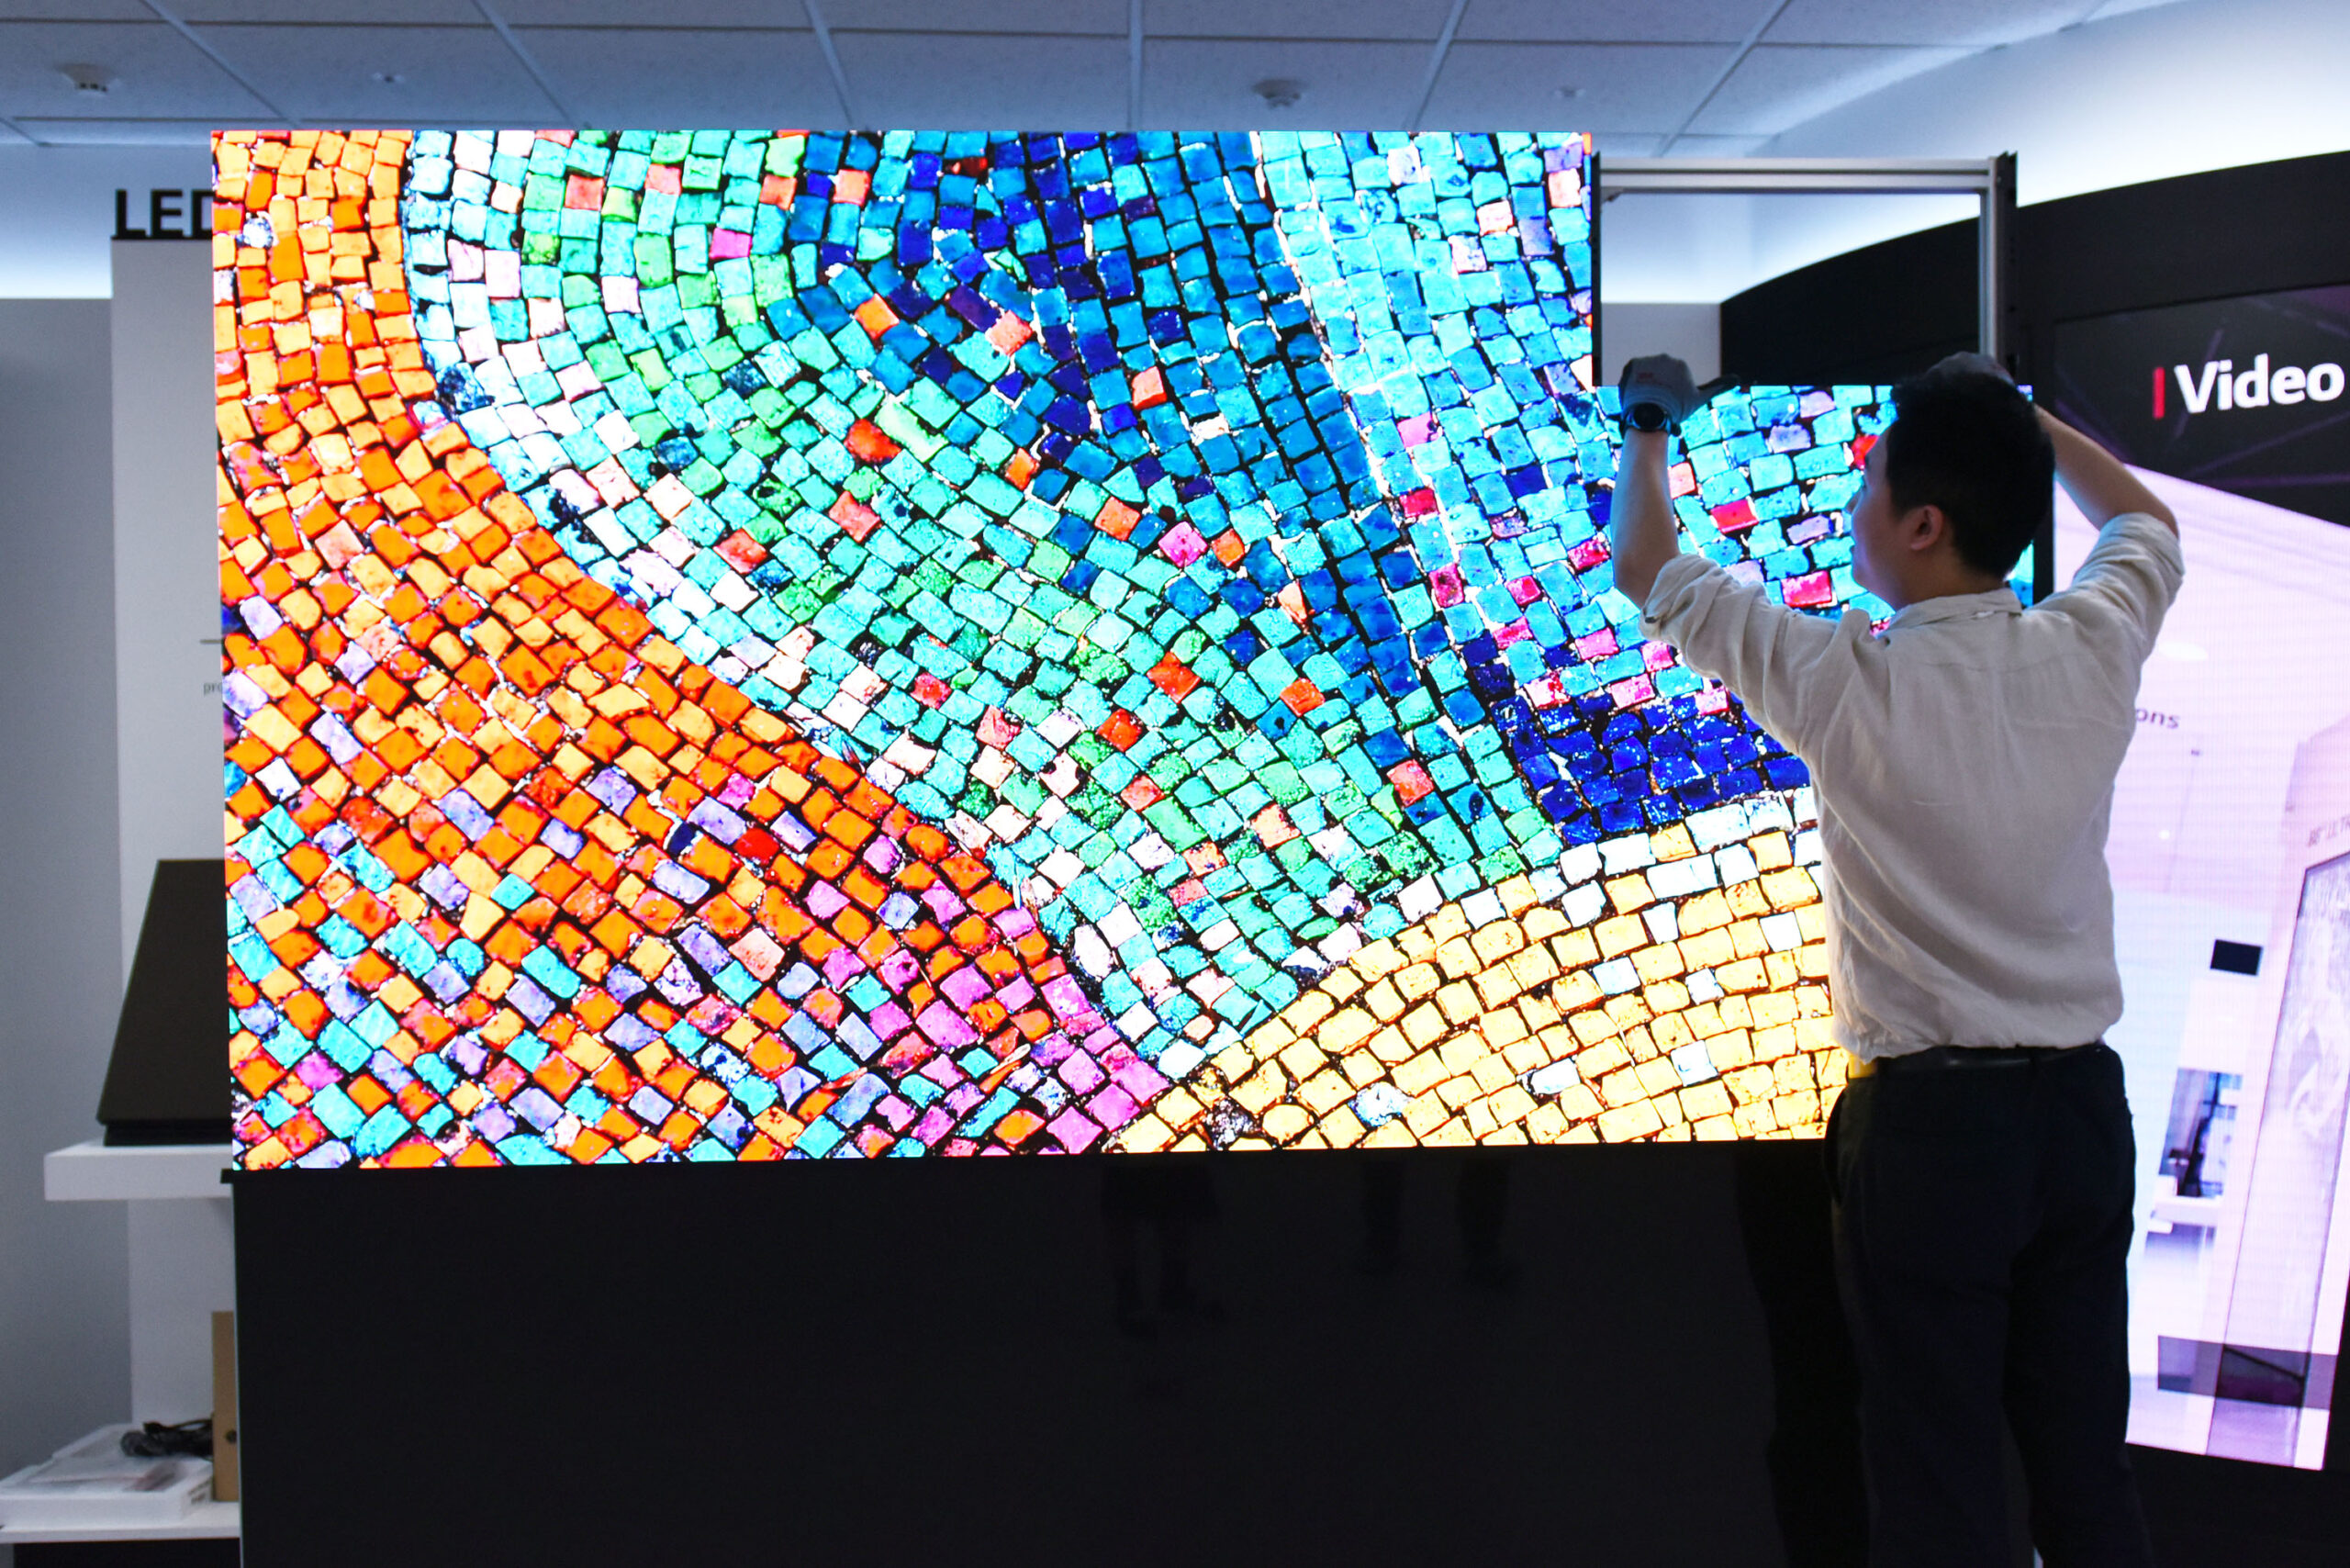 A man installing the LG LED Signage (LSAA) demonstrates how perfectly and easily each panel fits together to make a vibrant, high-quality large display